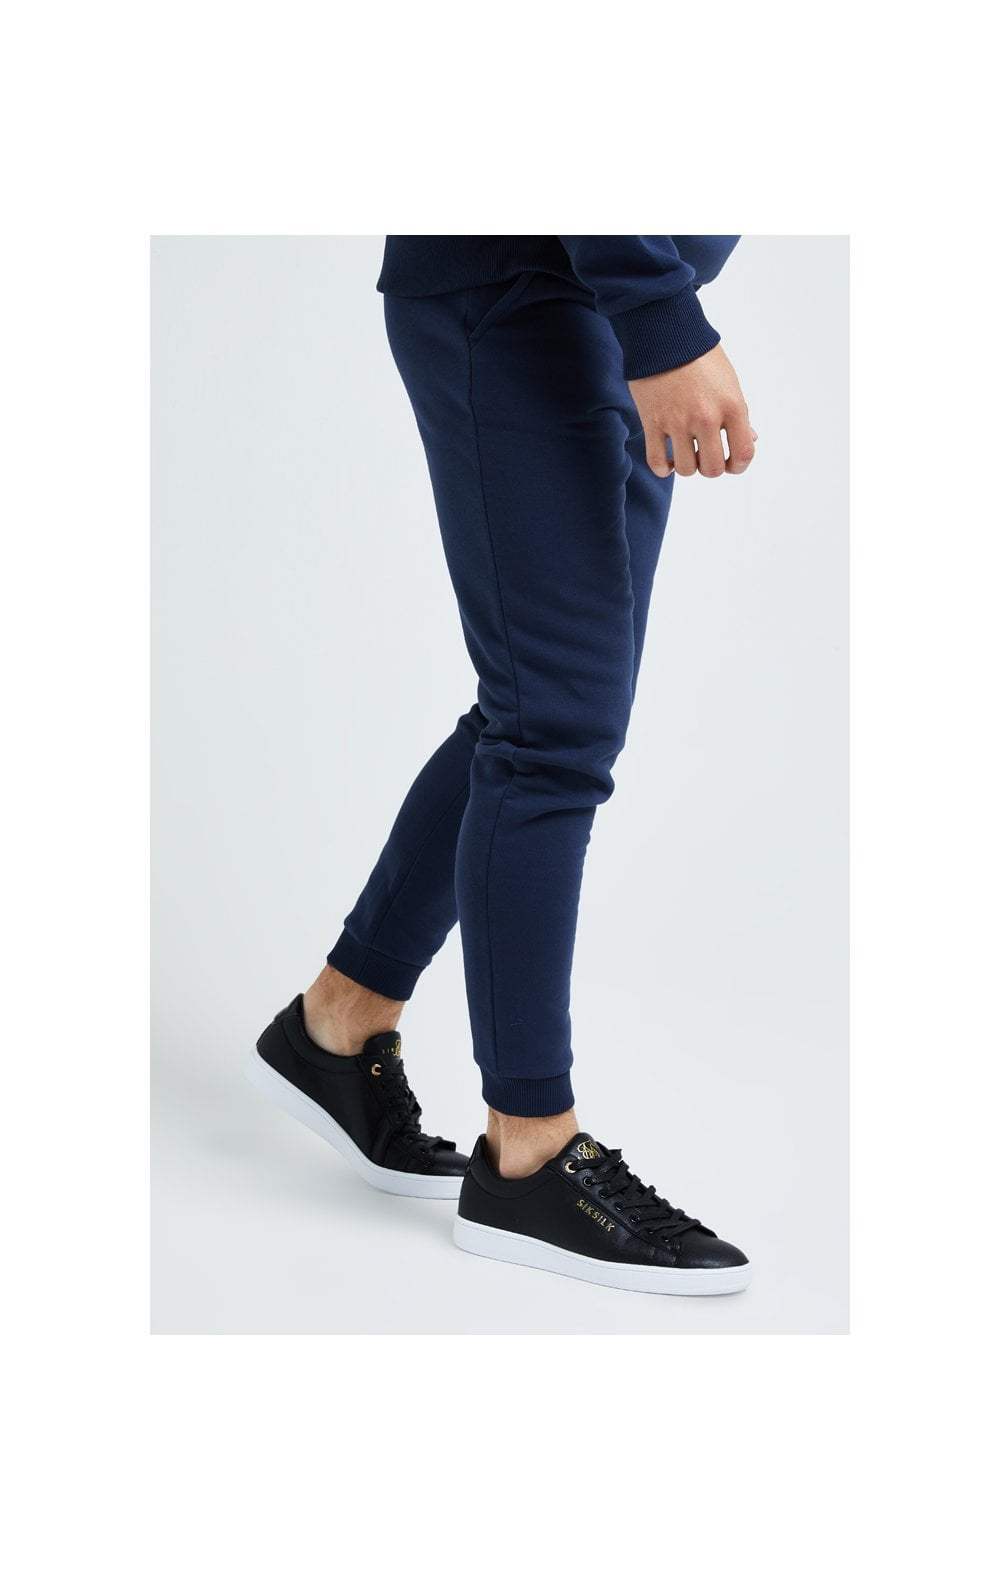 Illusive London Core Joggers – Navy (1)